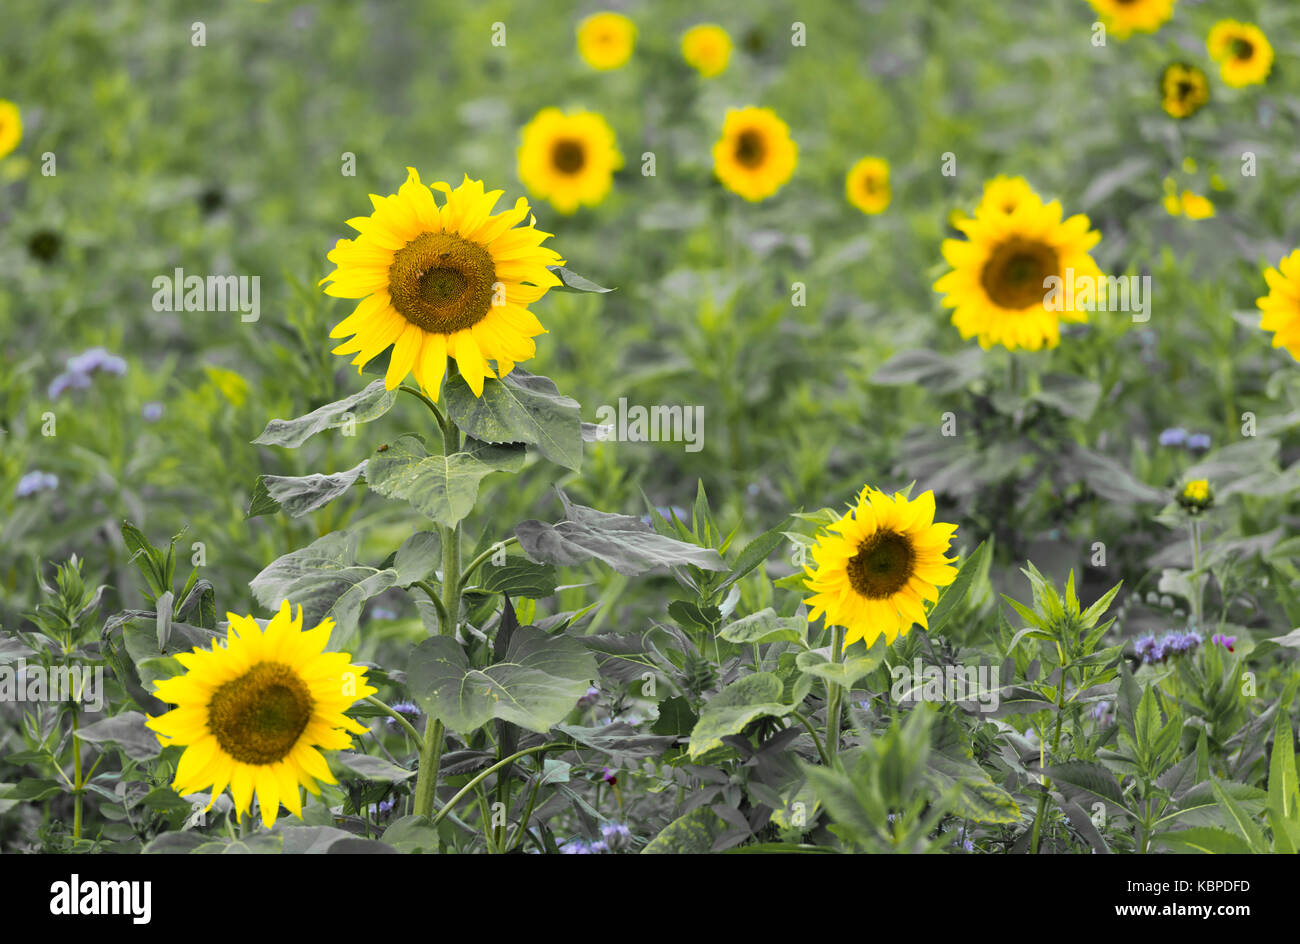 Large field with many sunflowers Stock Photo